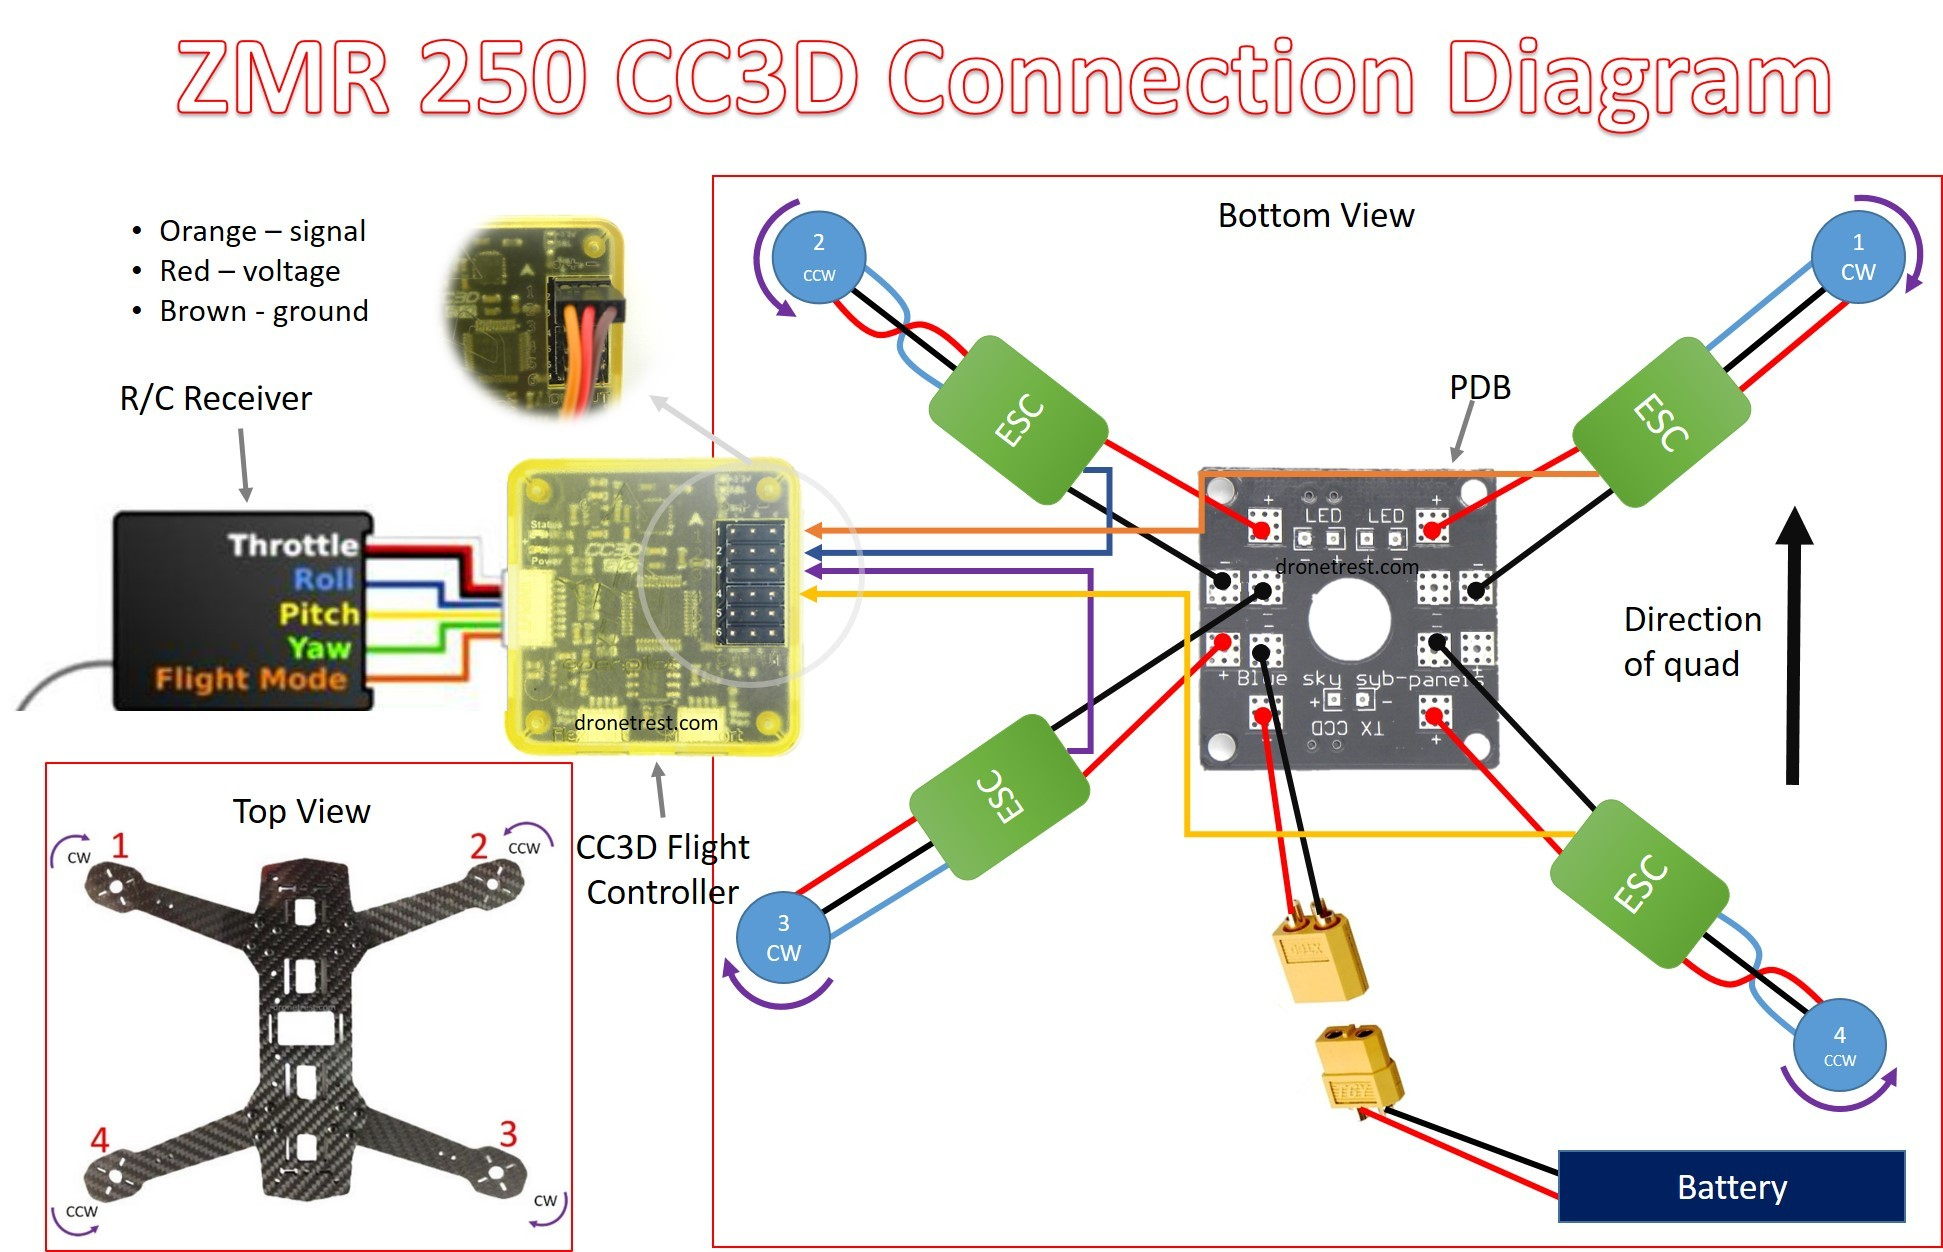 Cc3D Quadcopter Wiring Diagram | Manual E-Books - Cc3D Wiring Diagram